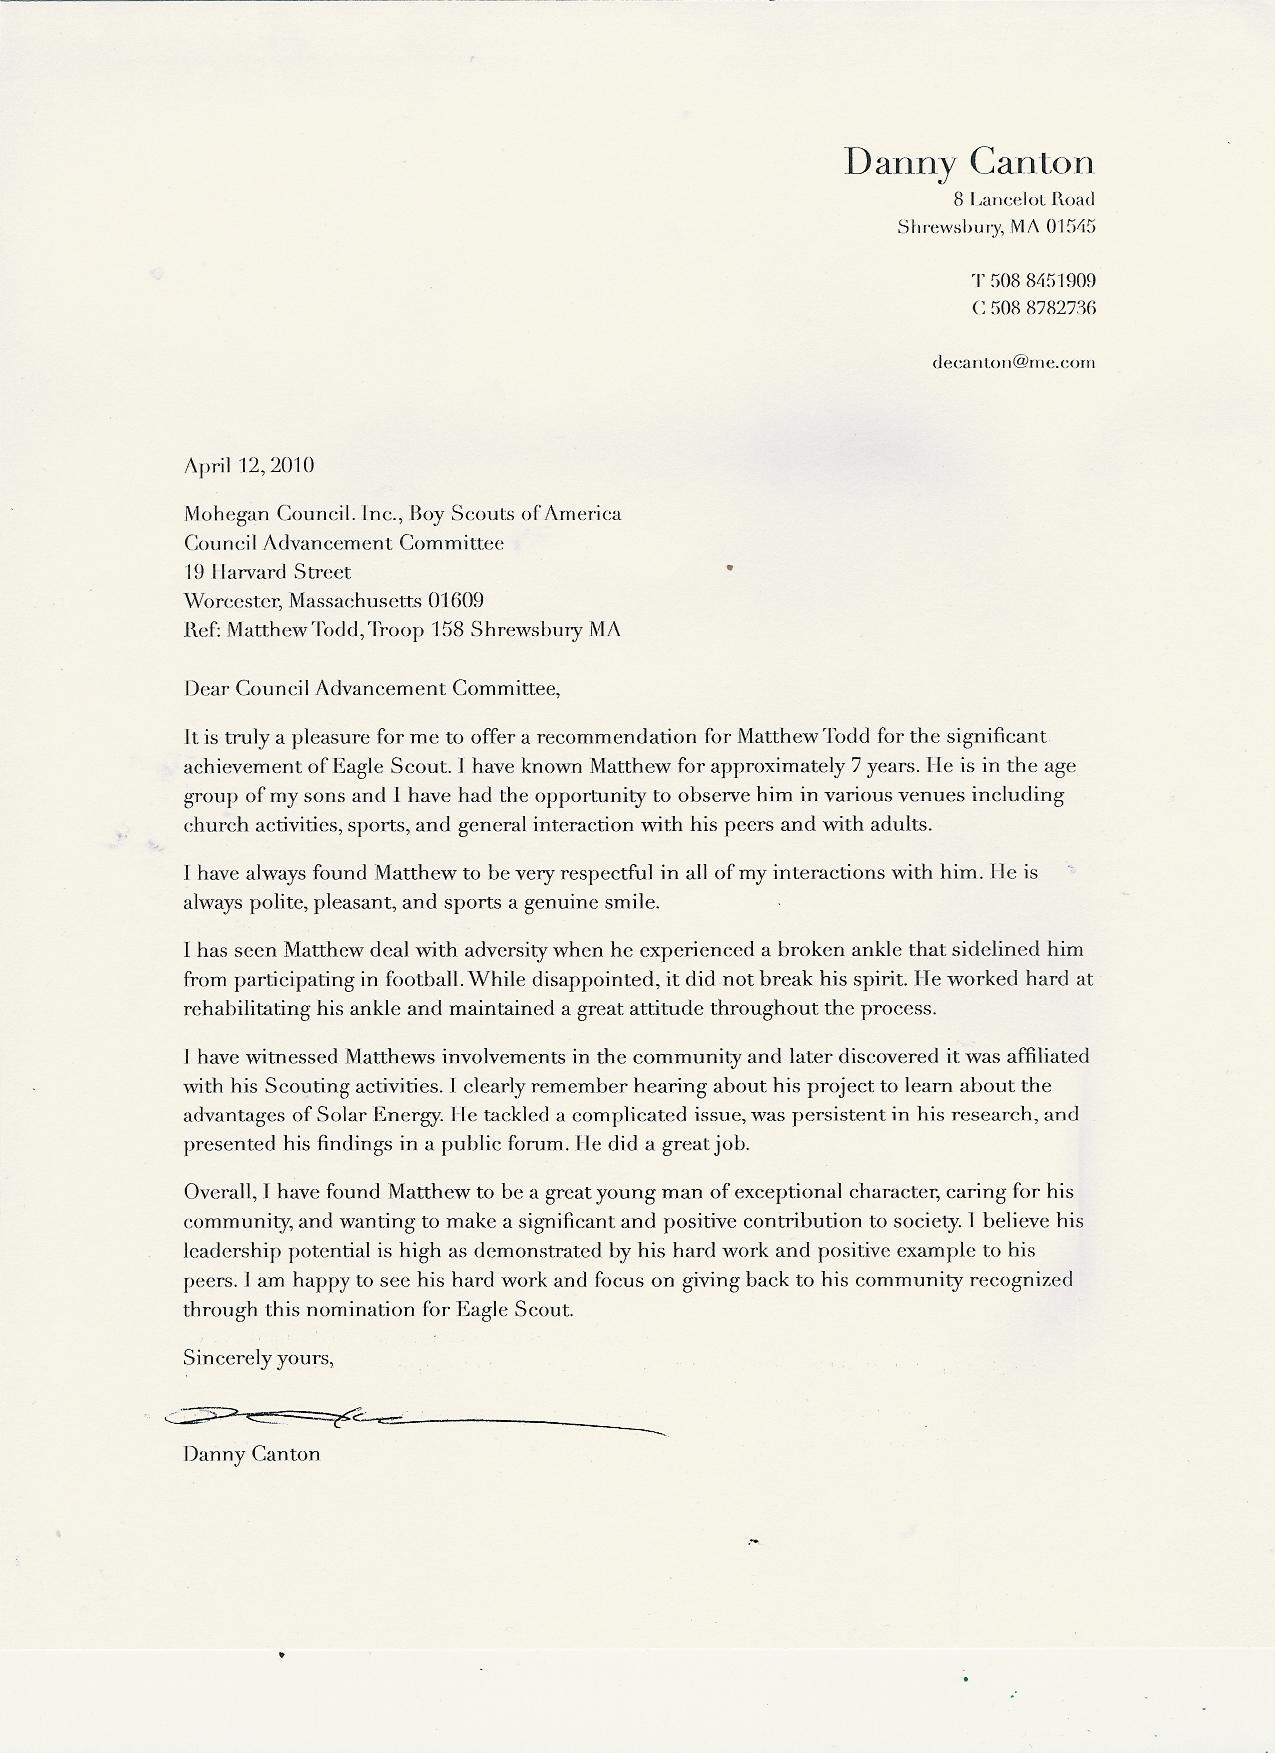 eagle scout recommendation letter Quotes